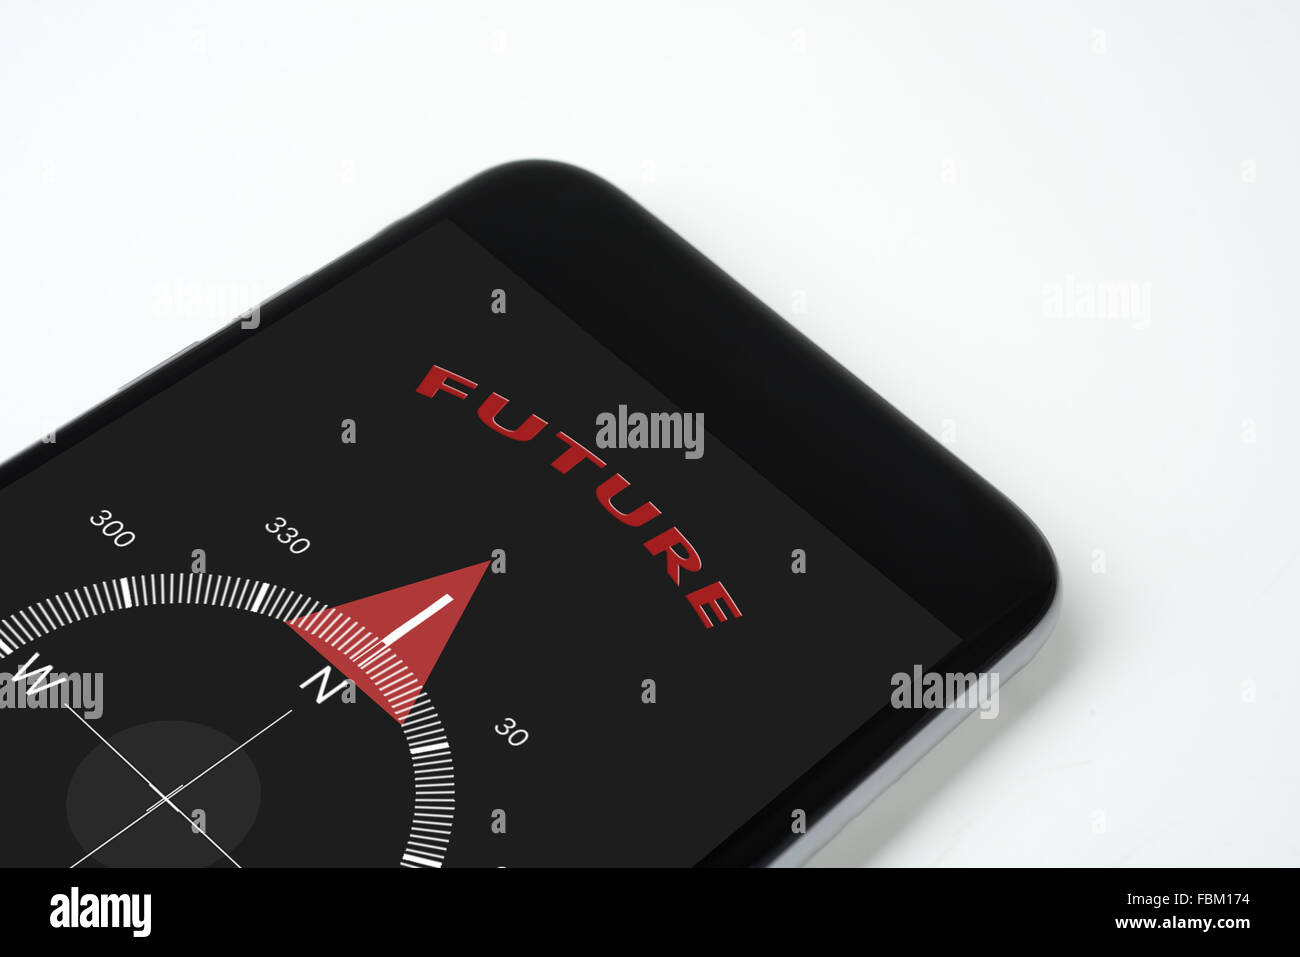 handy compass with text and arrow Future. - Stock Image